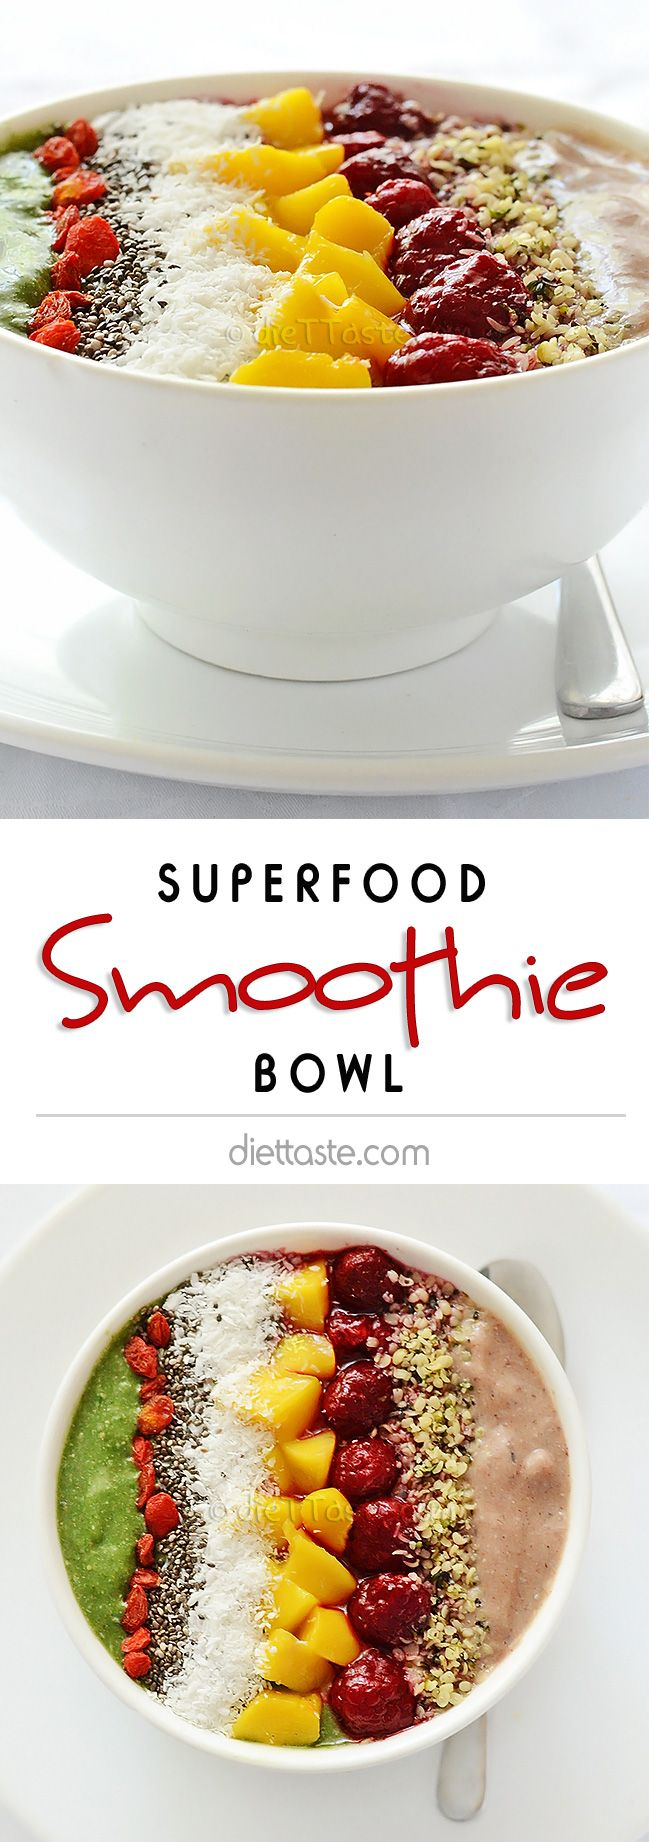 Superfood Smoothie Bowl Recipe: High nutrition smoothie bowl for weight loss that can be eaten with a spoon! | Healthy Breakfast Recipe |